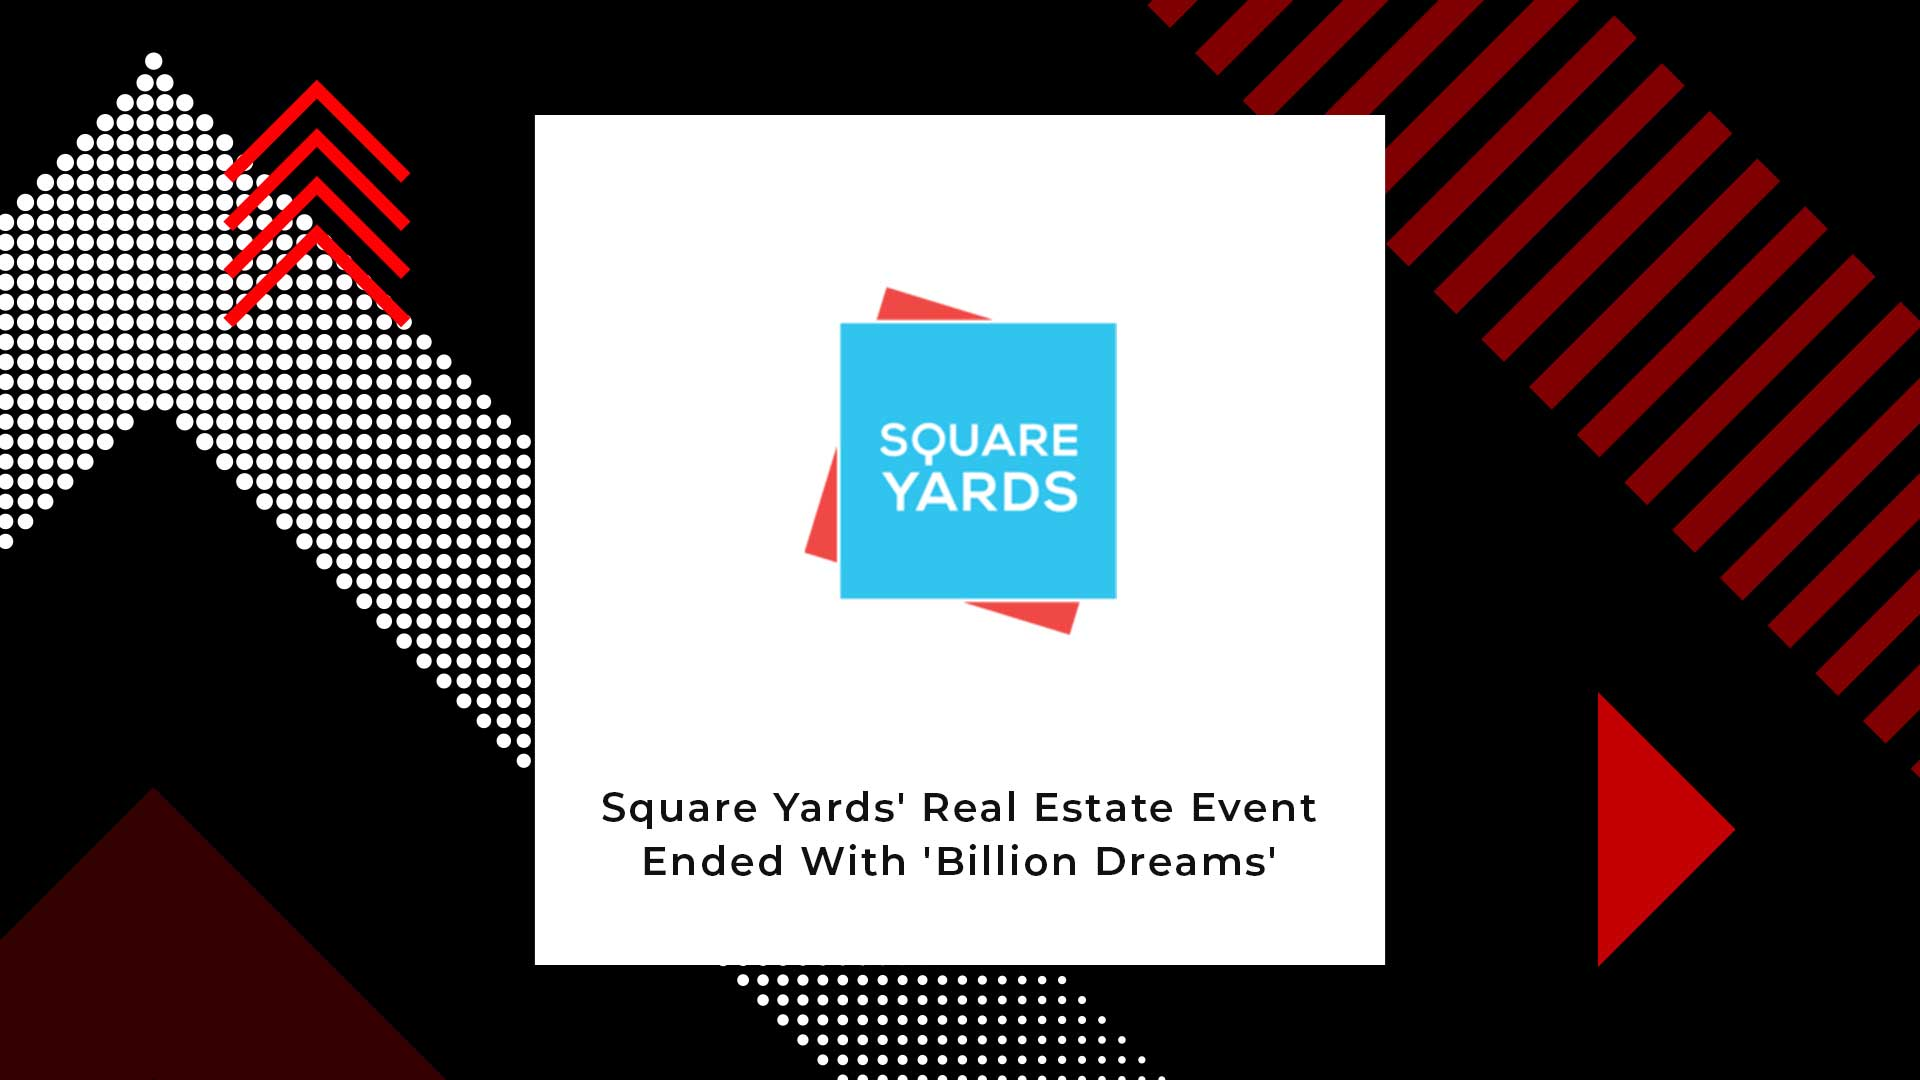 Square Yards' Series Of Real Estate Events End With Billion Dreams